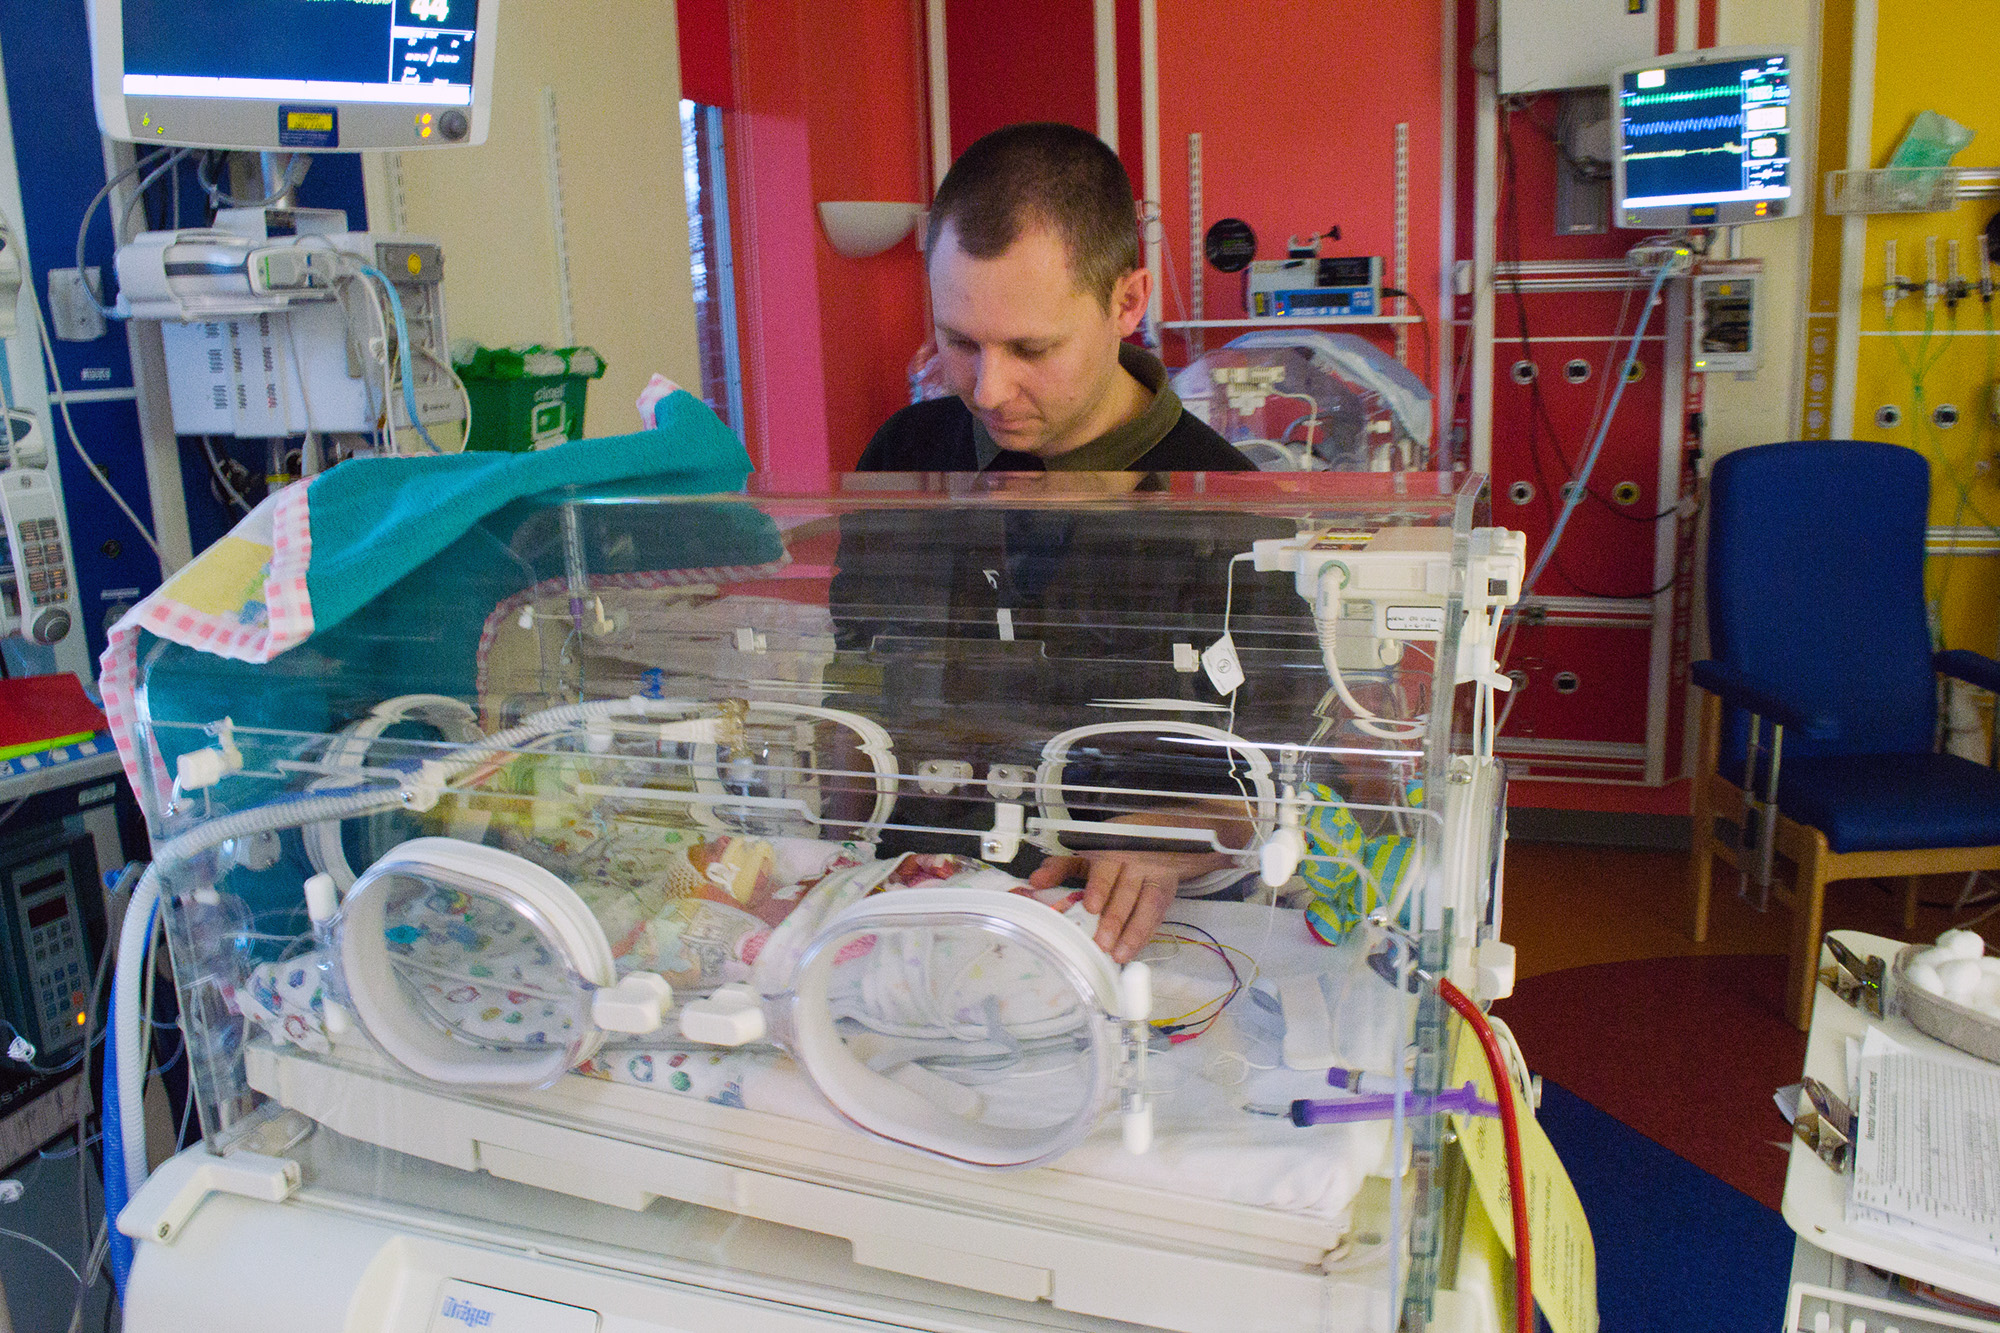 Small baby in incubator, with Daddy looking in